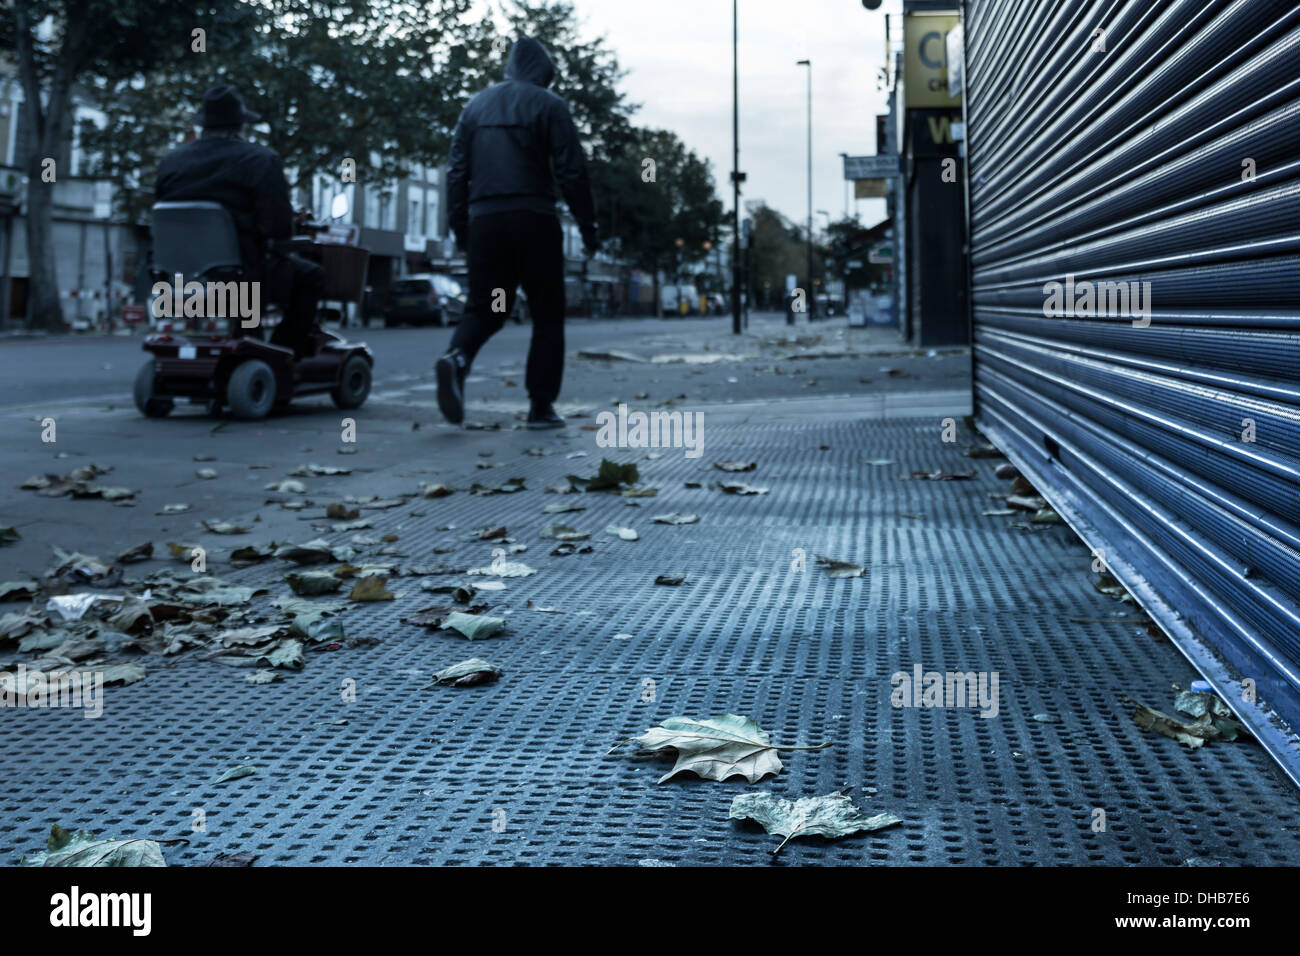 A youth passes a man on a mobility scooter along the Caledonian Road in Islington, North London, on a morning in - Stock Image